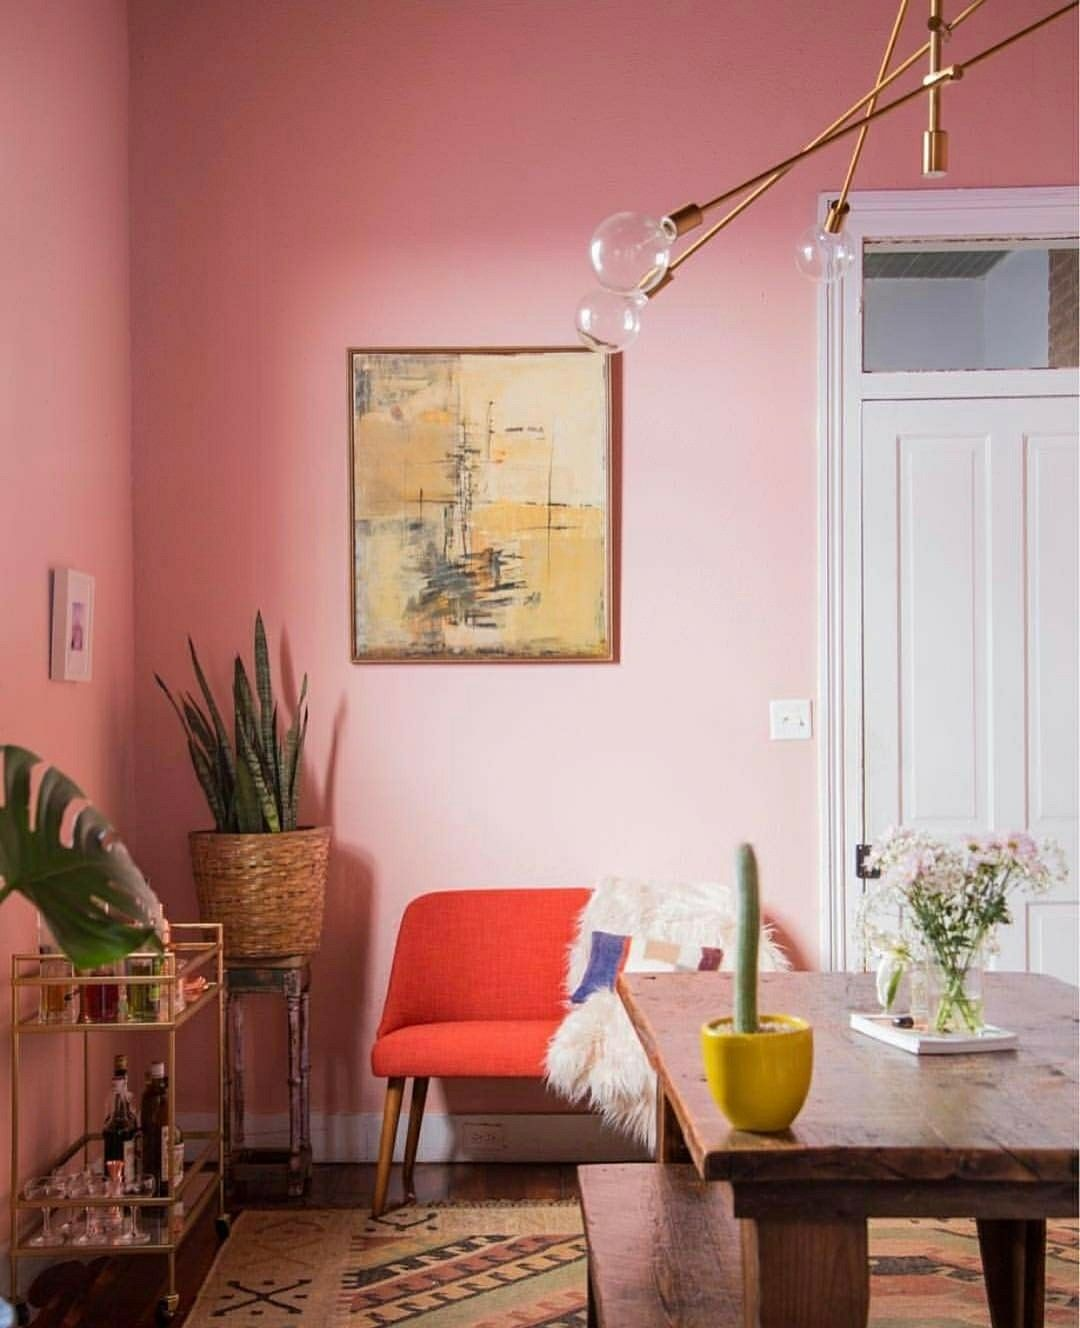 via houseofhipstersblog on insta cottage1 room pink dining rh pinterest com